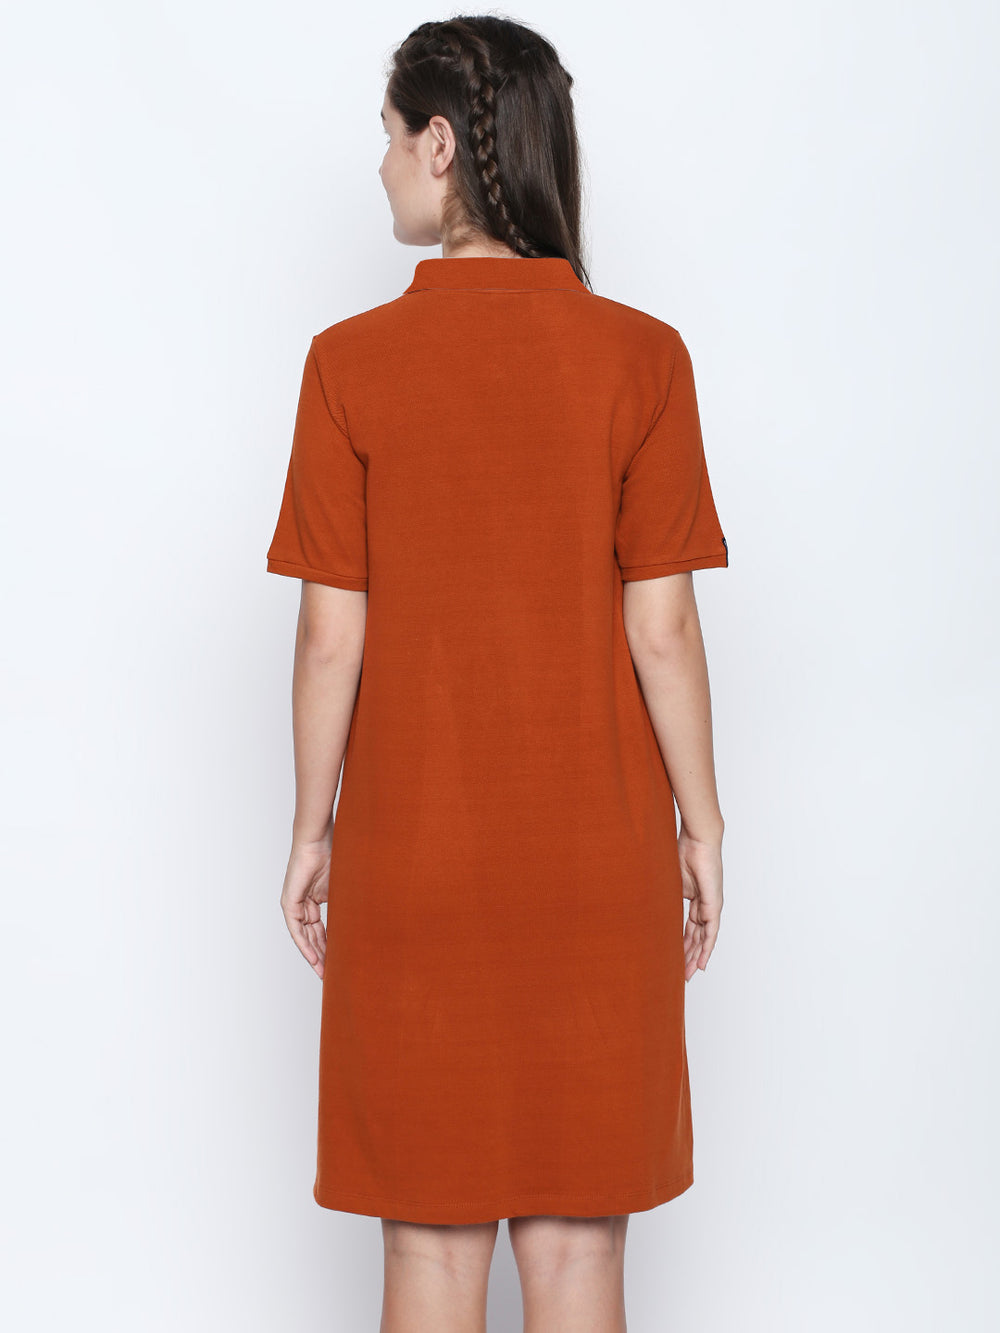 Orange Rust Cotton Embroidered Half Sleeve Polo Dress